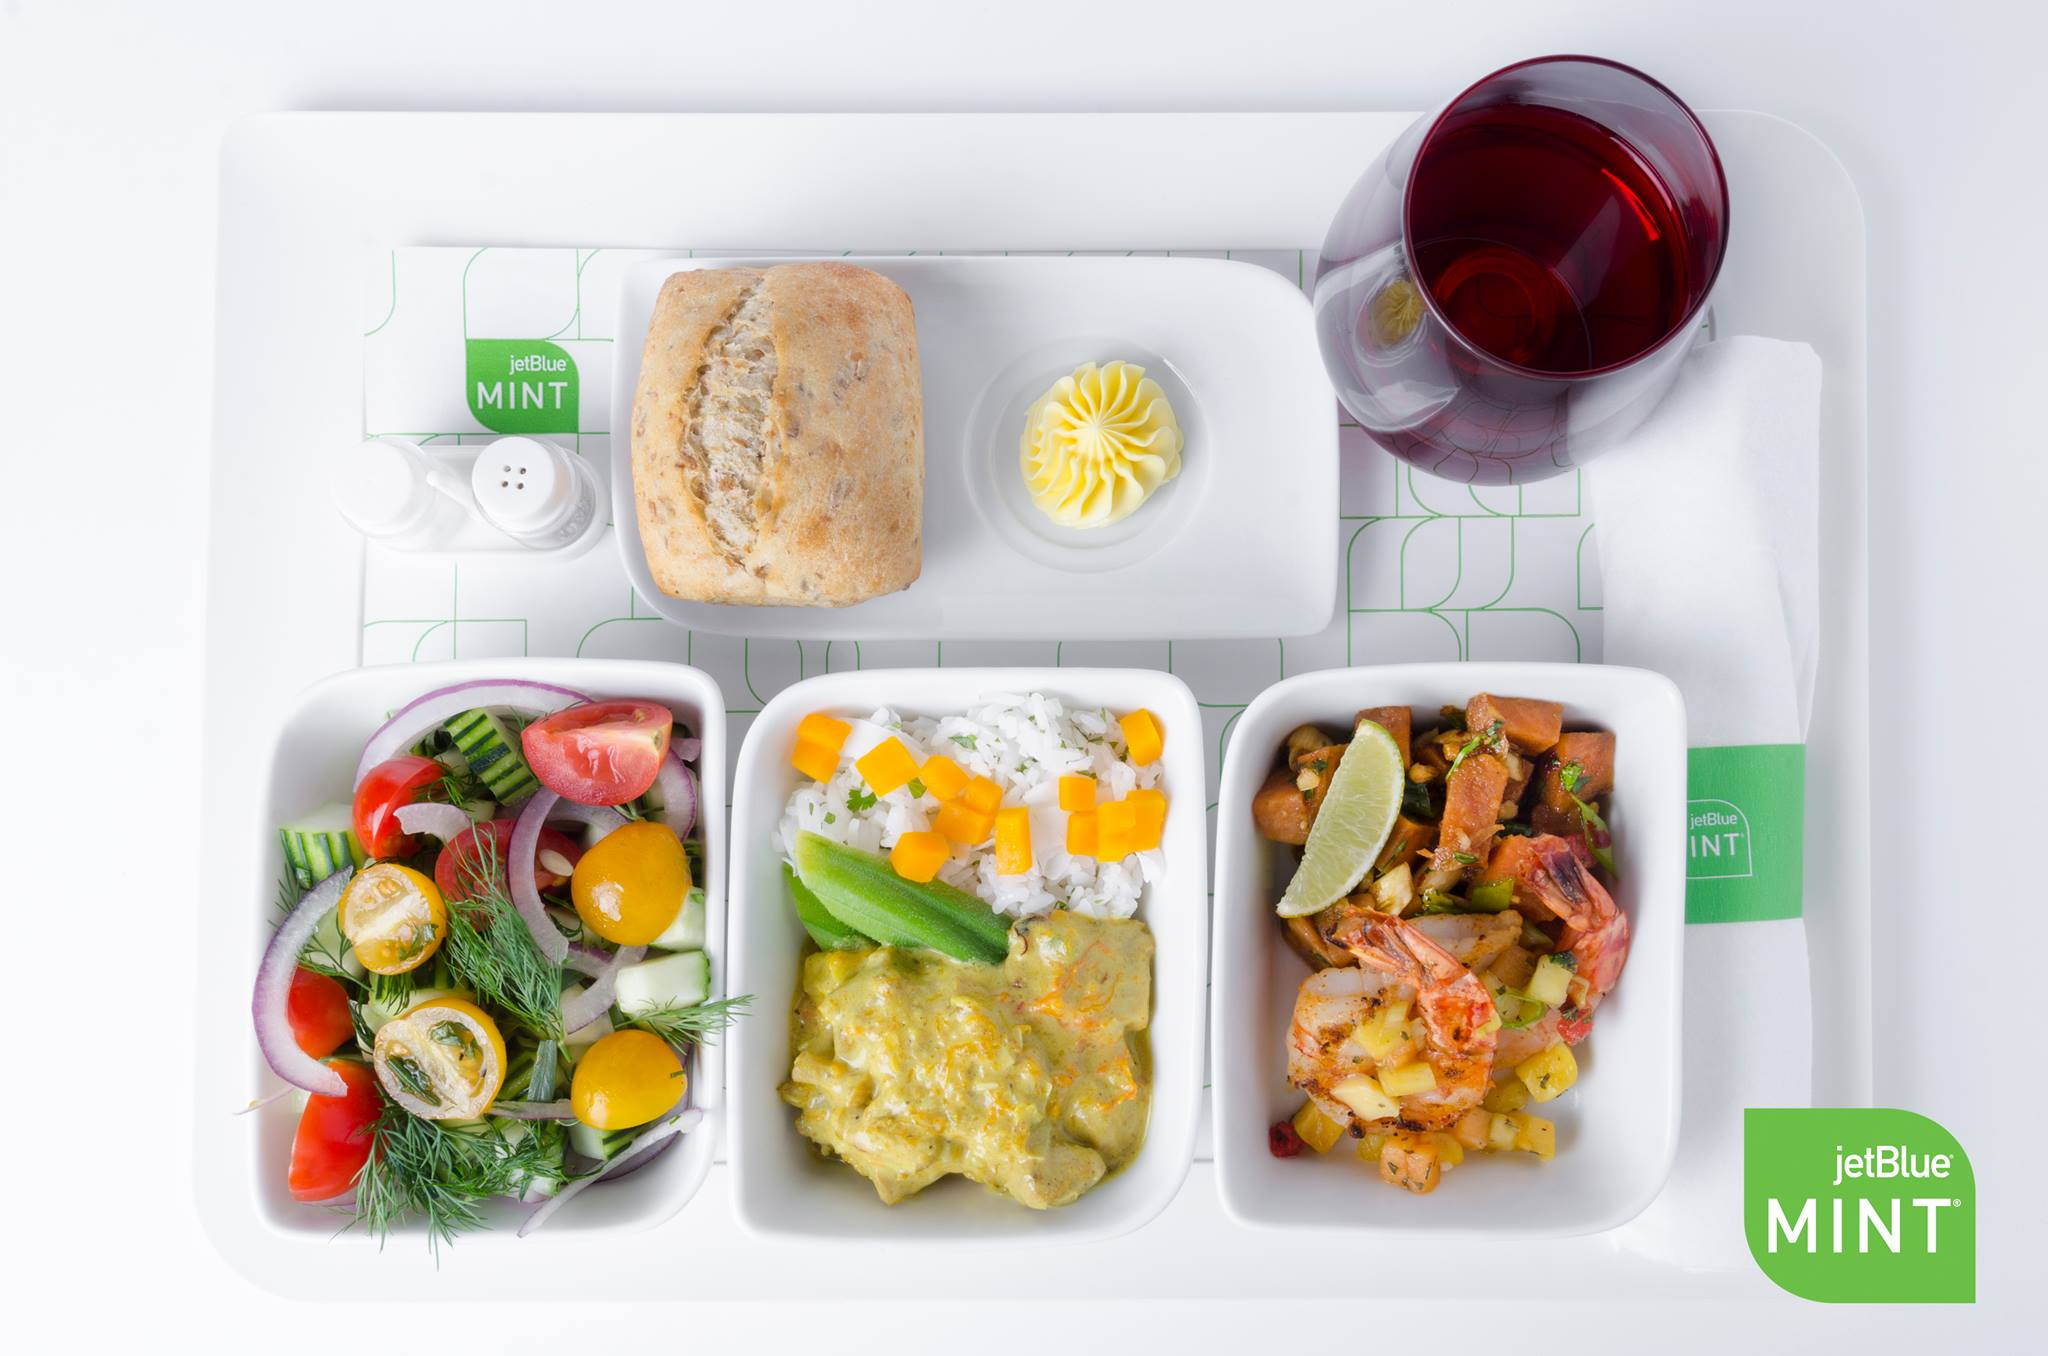 JetBlue air meal